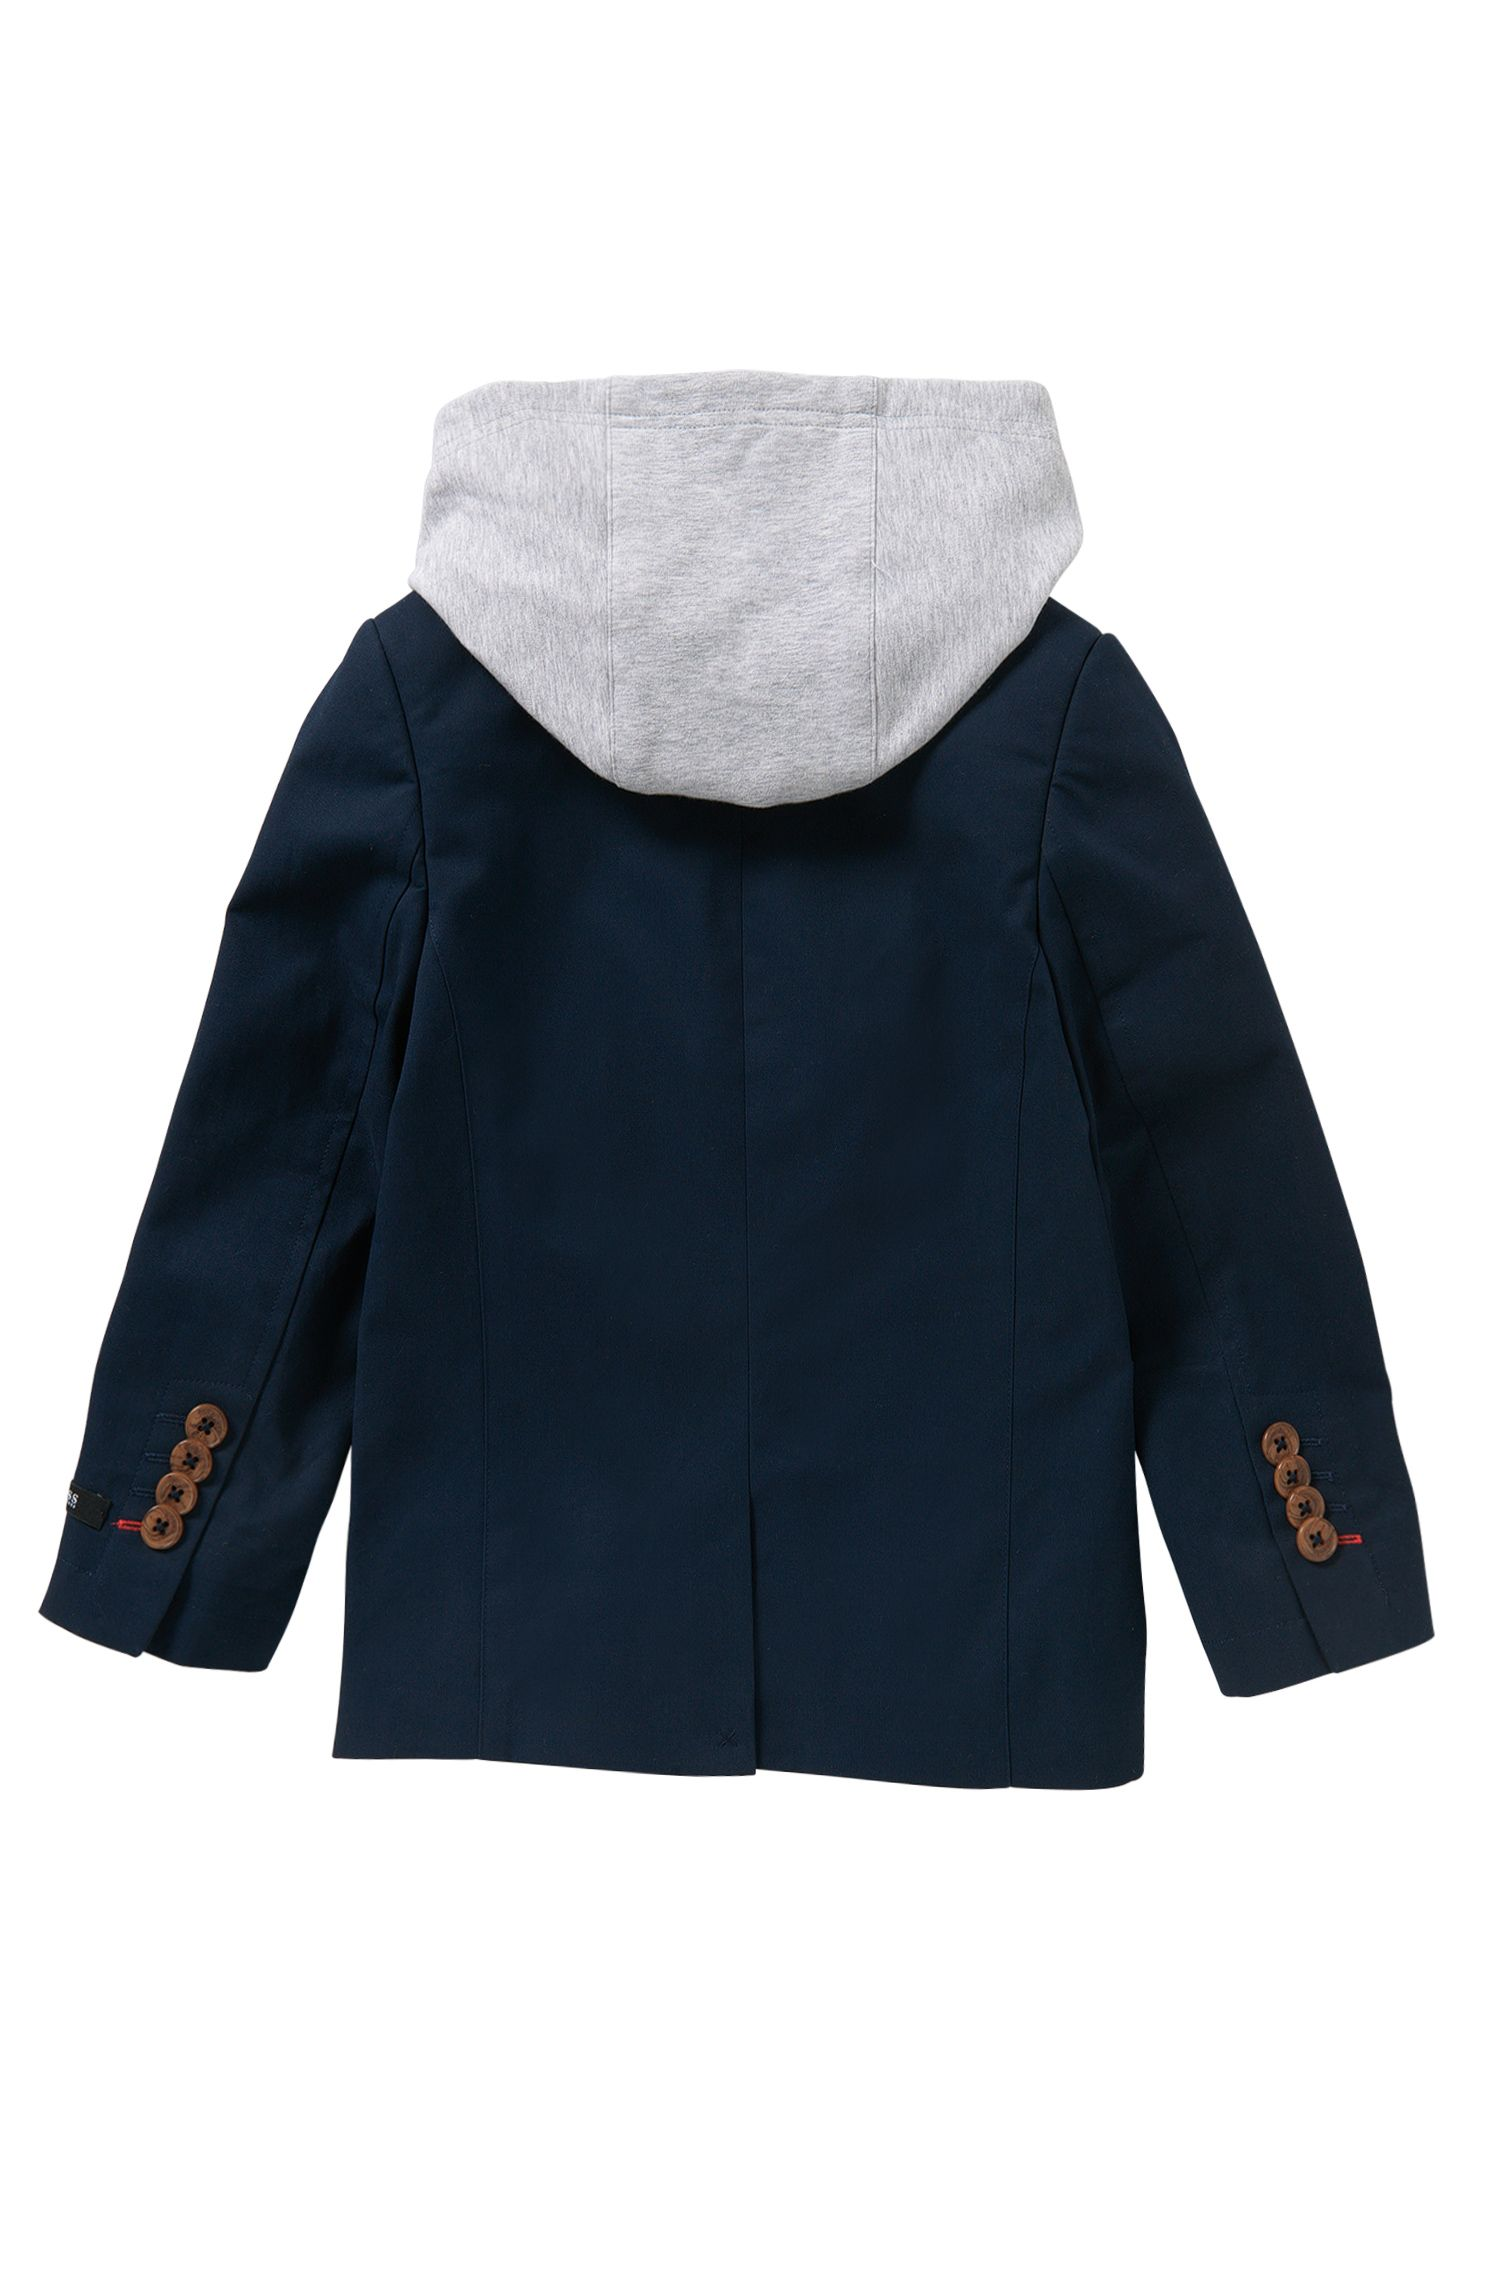 Kids' jacket in cotton with a detachable insert: 'J26276'